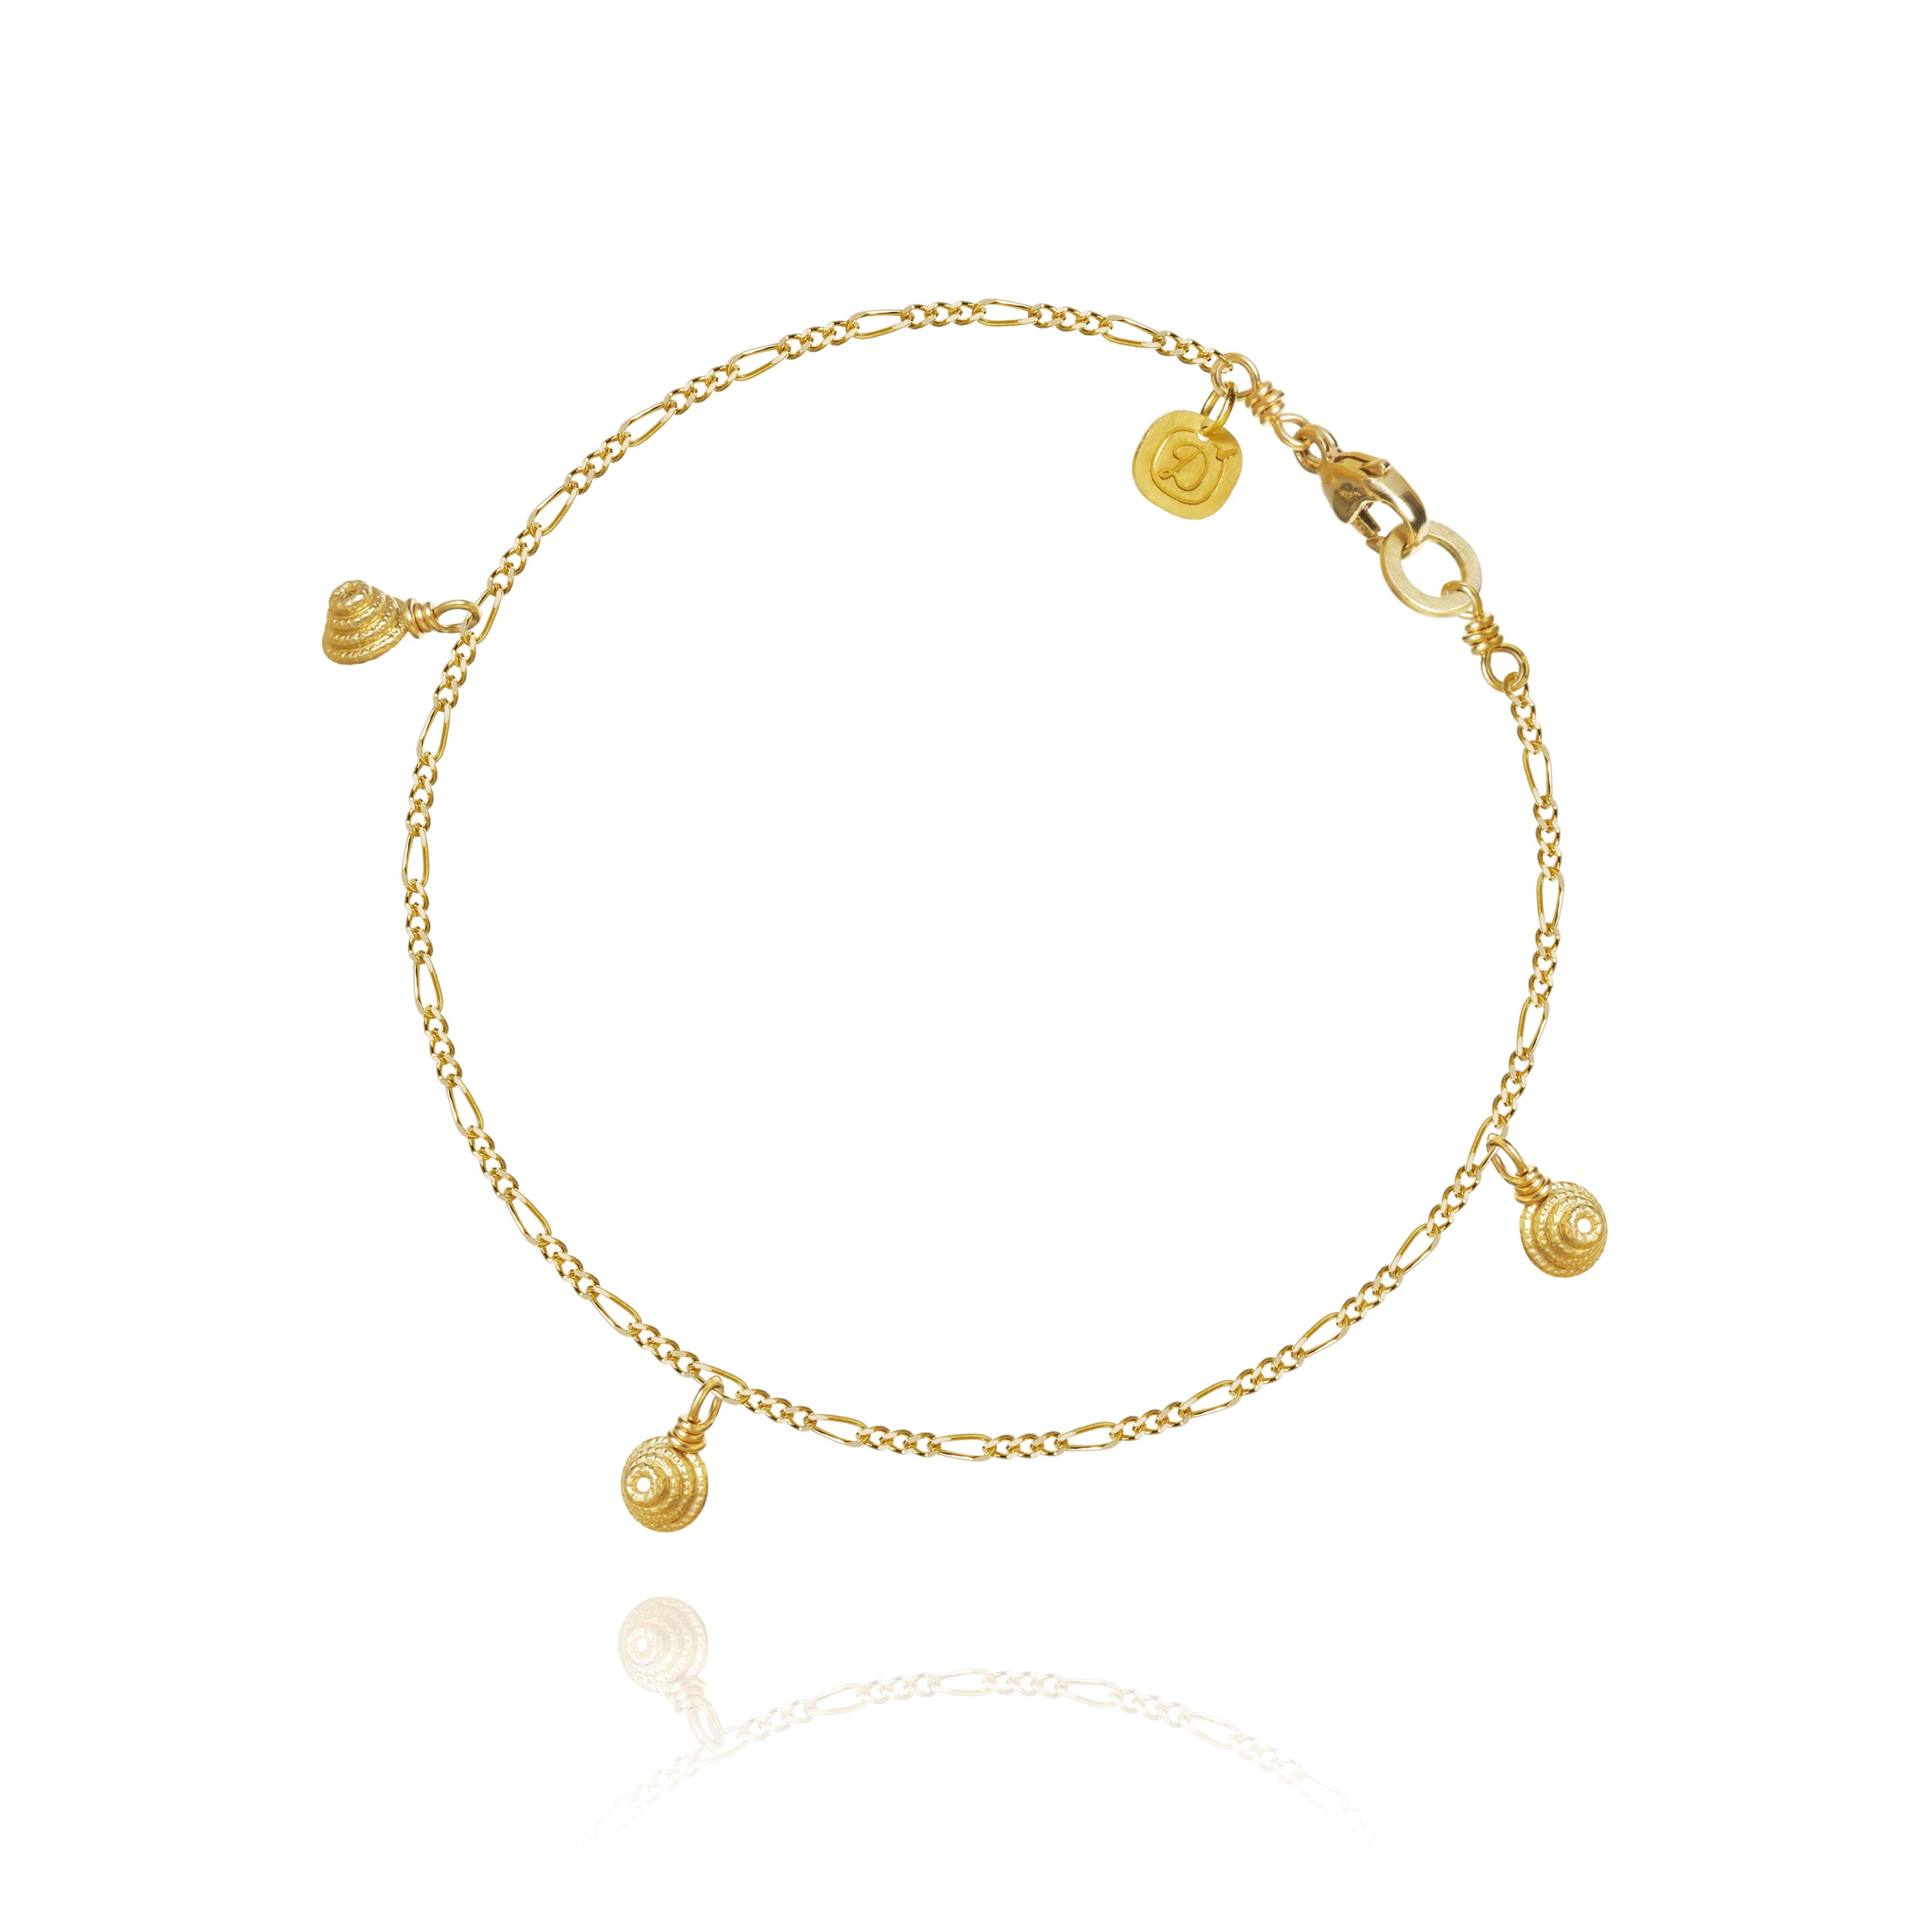 Thera Twist Piccolo armbånd, 18K gull, Dulong Fine Jewelry